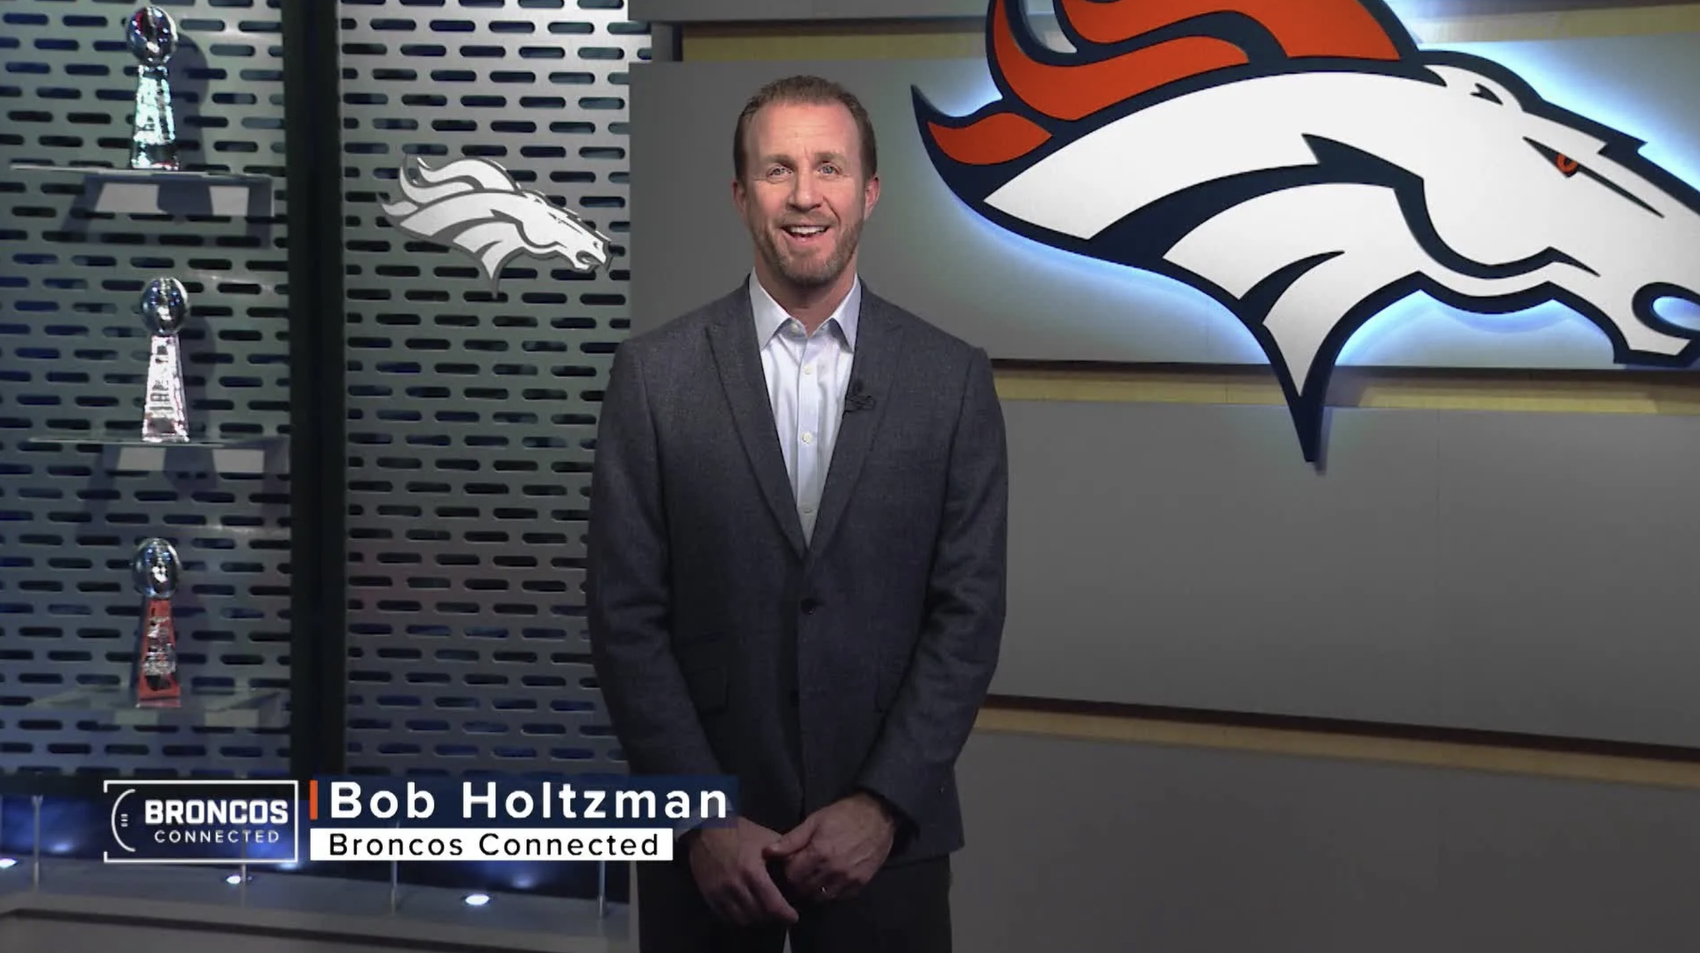 NCS_NFL-Denver-Broncos-TV-Studio_0004